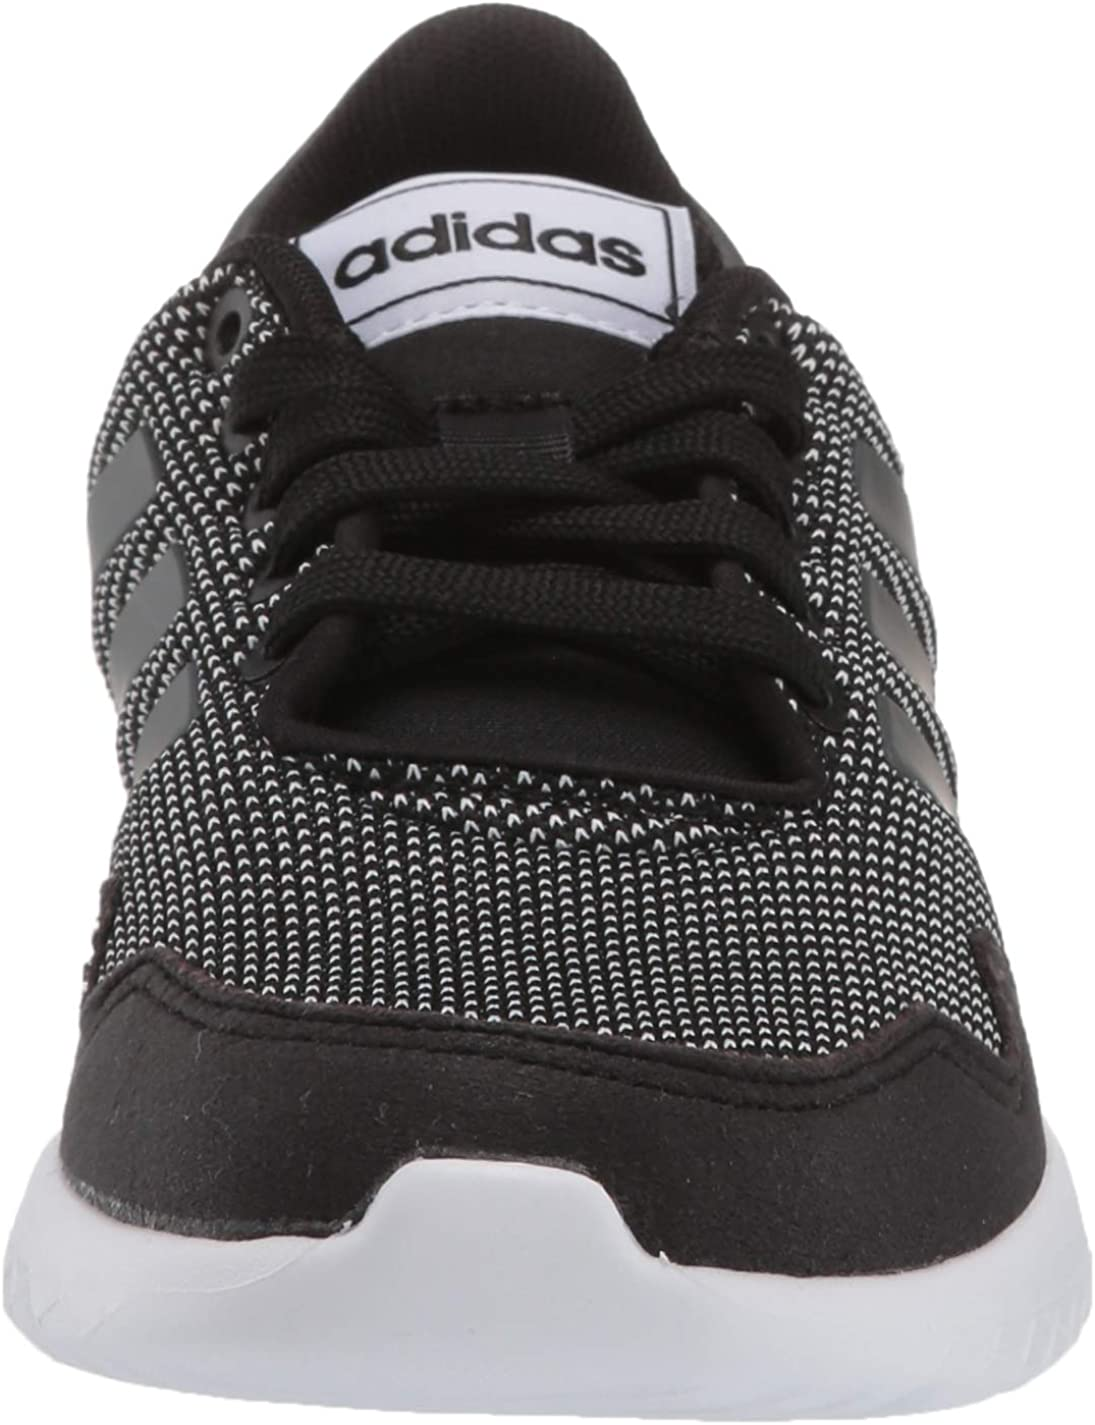 adidas Baby Archivo Sneaker Black Grey White